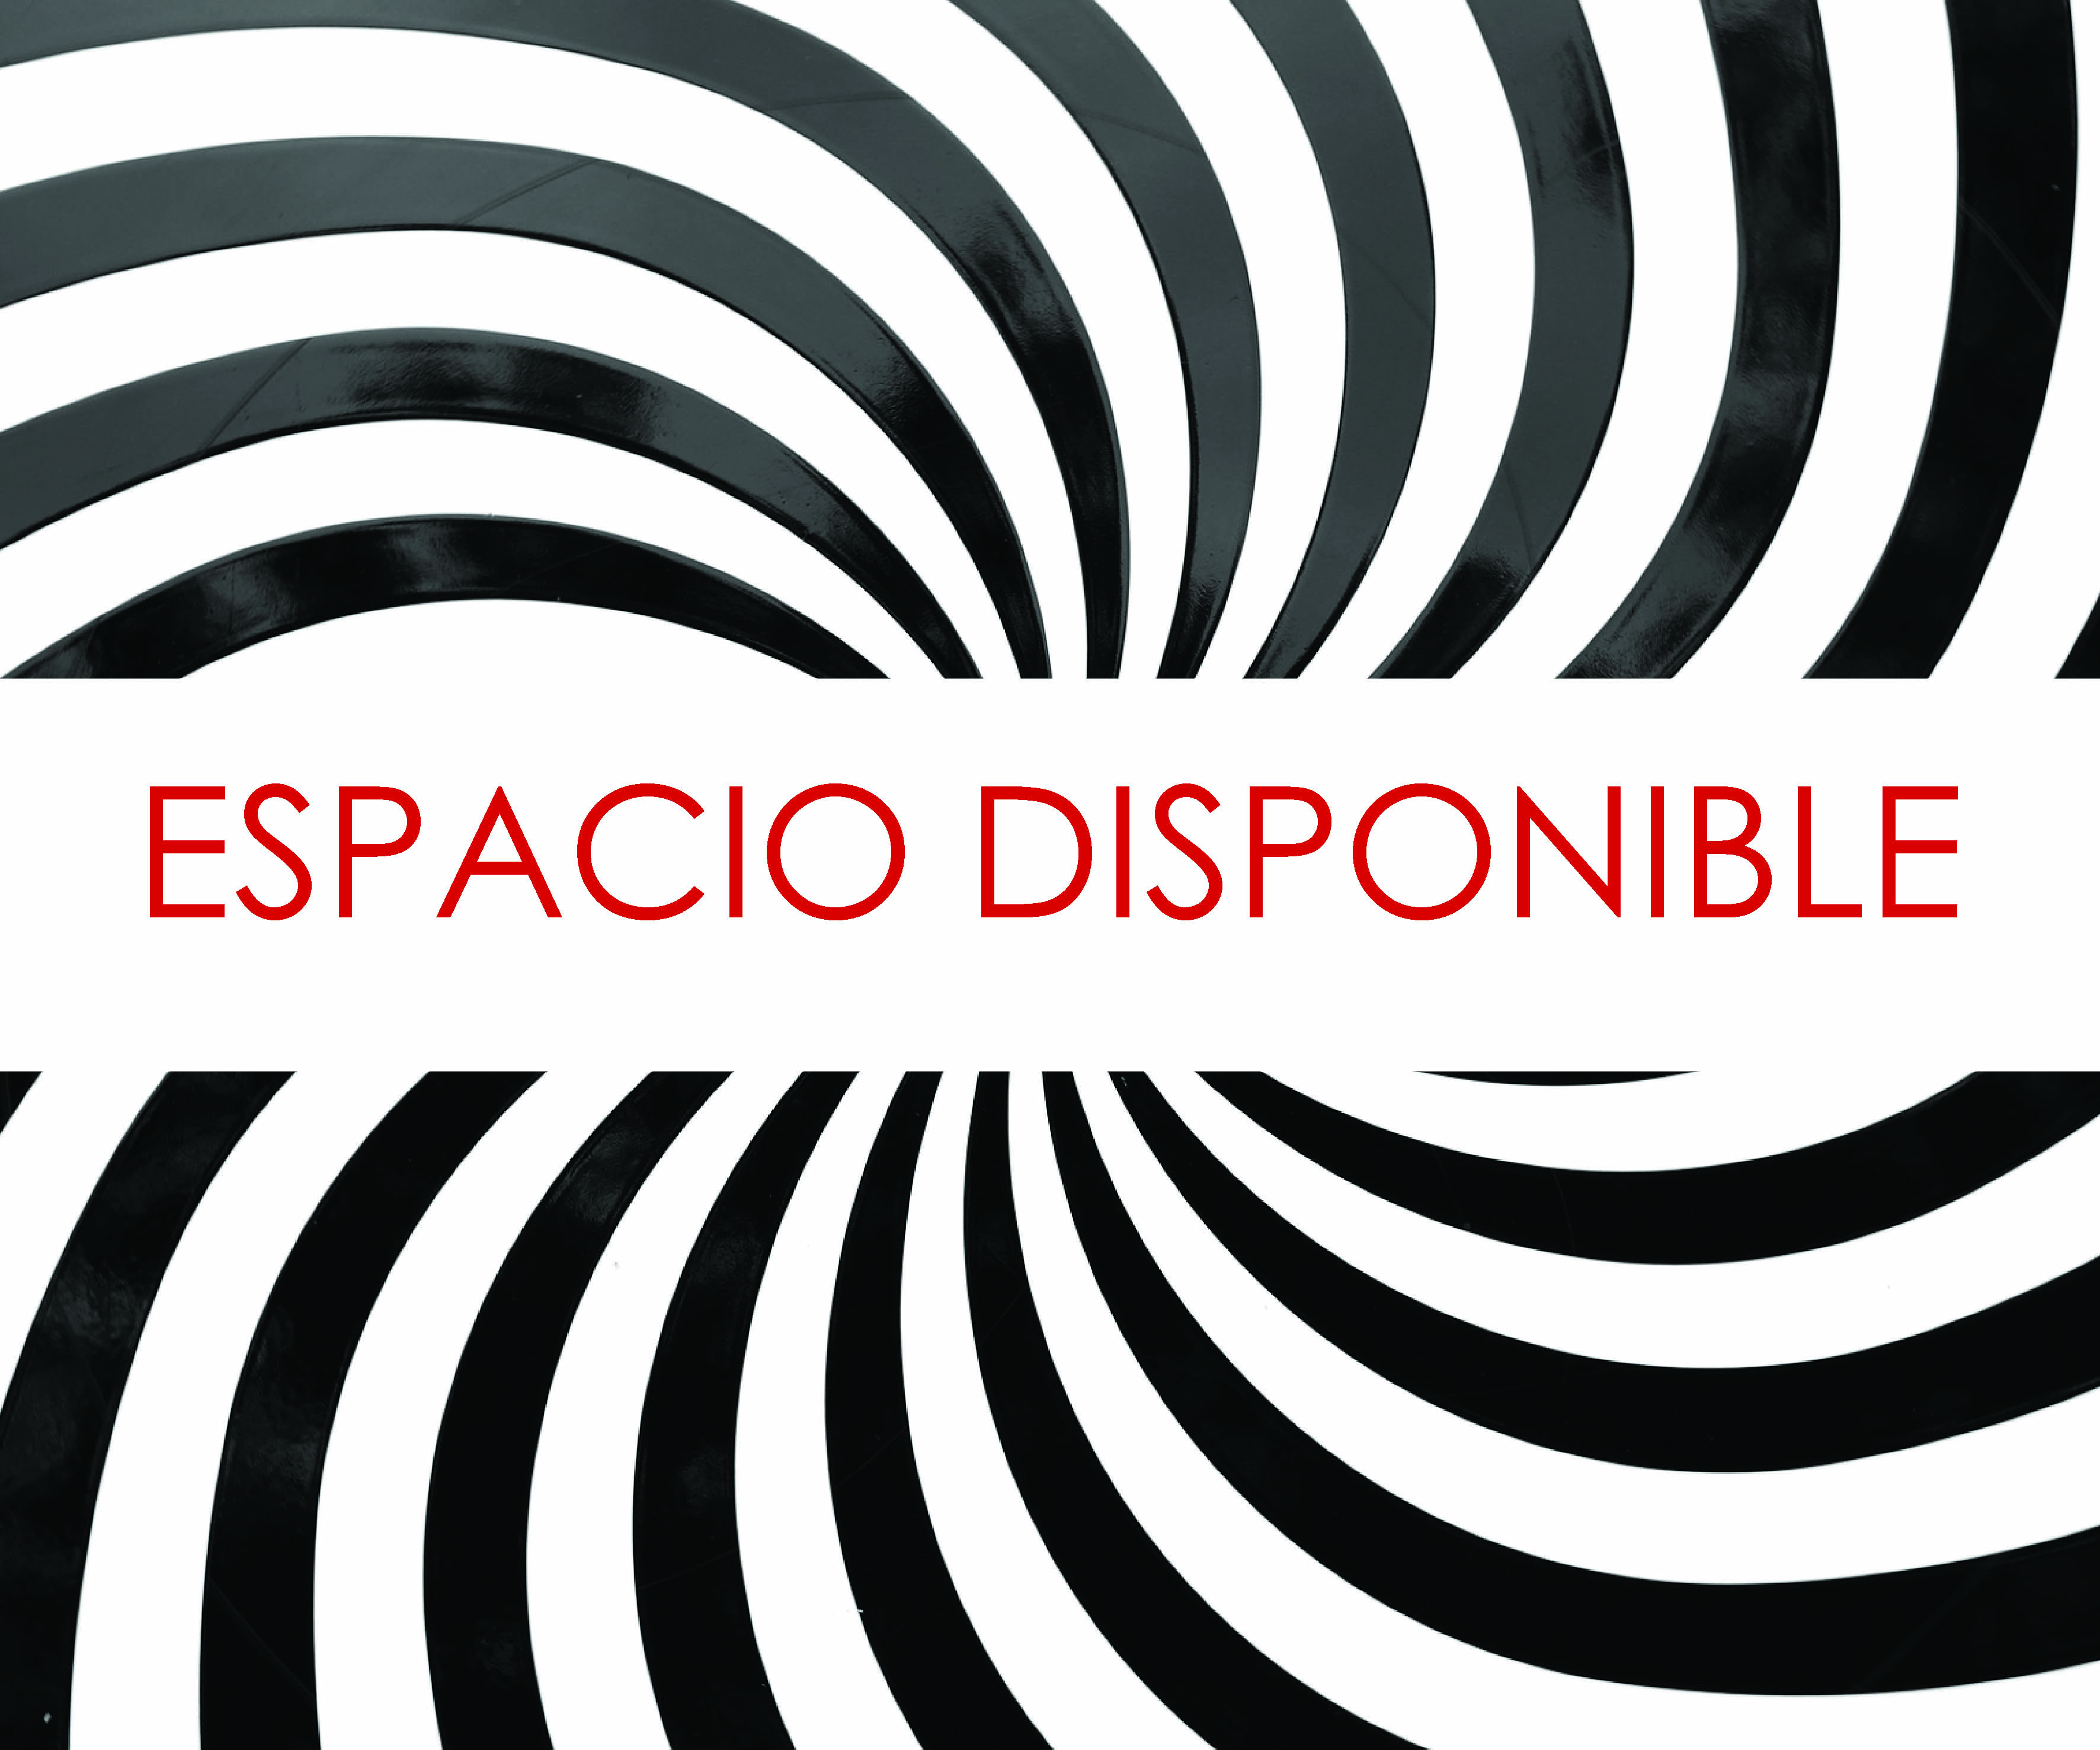 espacio-disponible-4.jpg